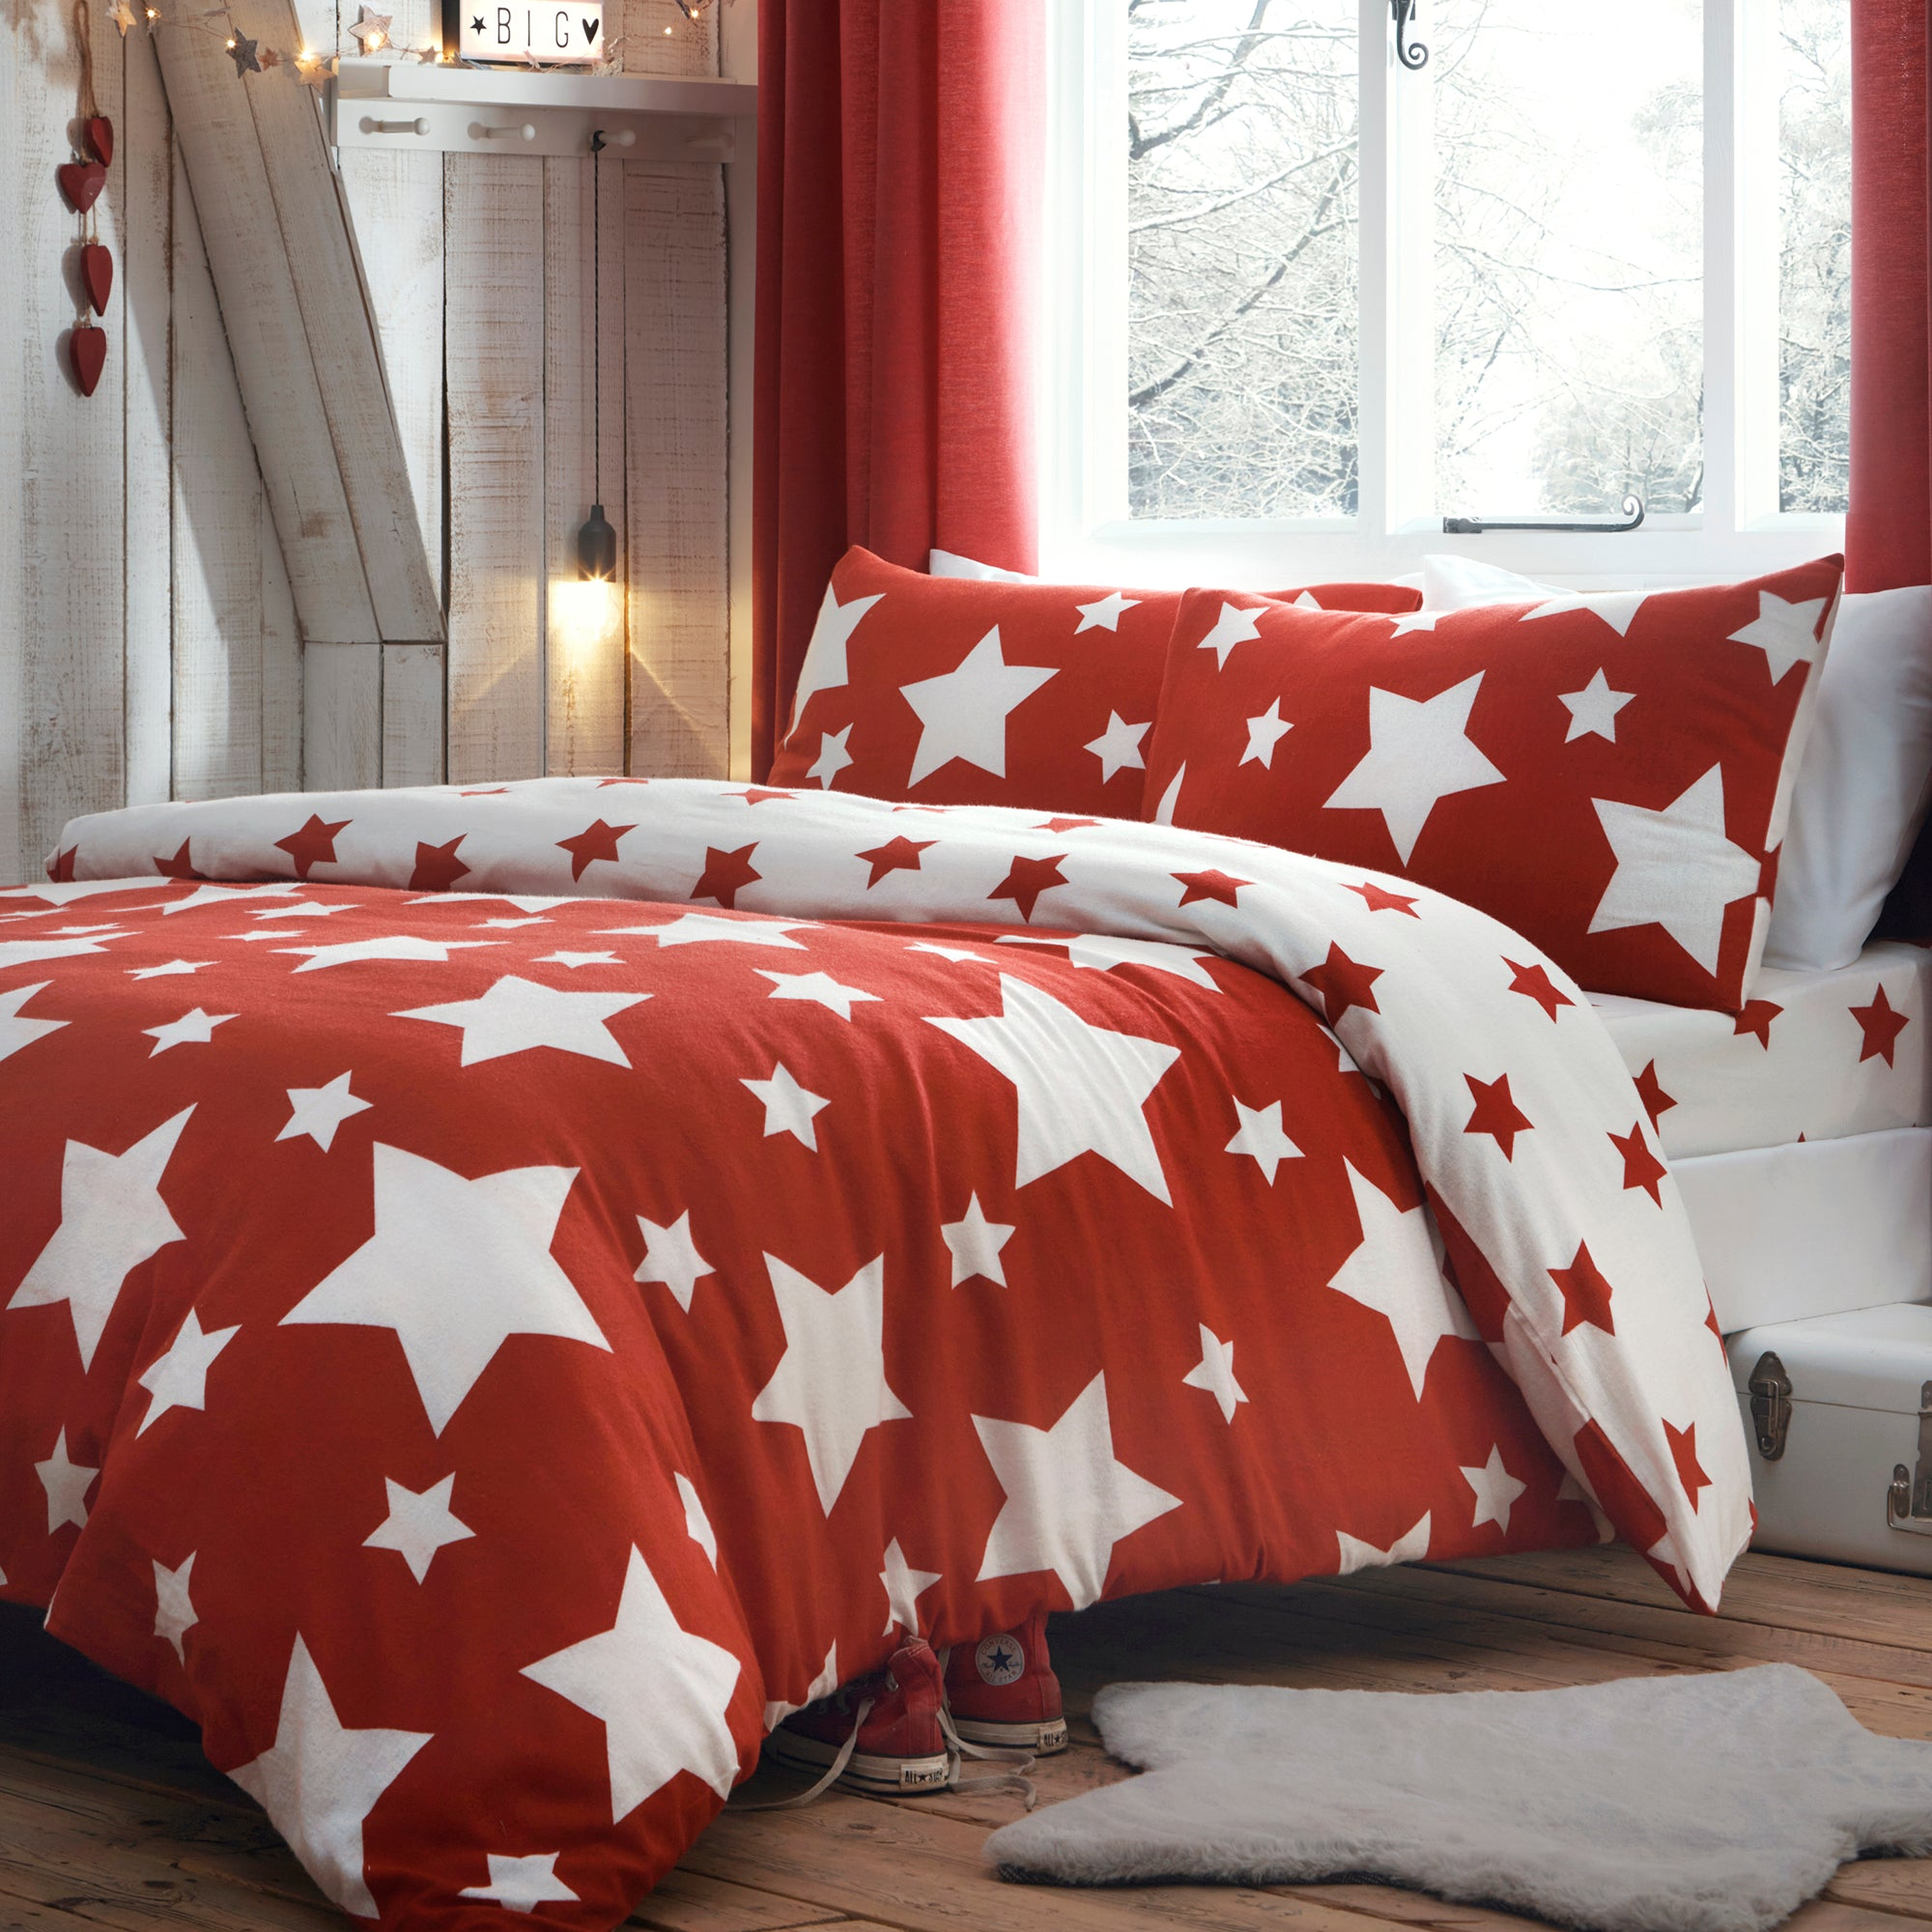 Stars - Brushed Cotton Duvet Cover Set & Fitted Sheets in Red - by Bedlam